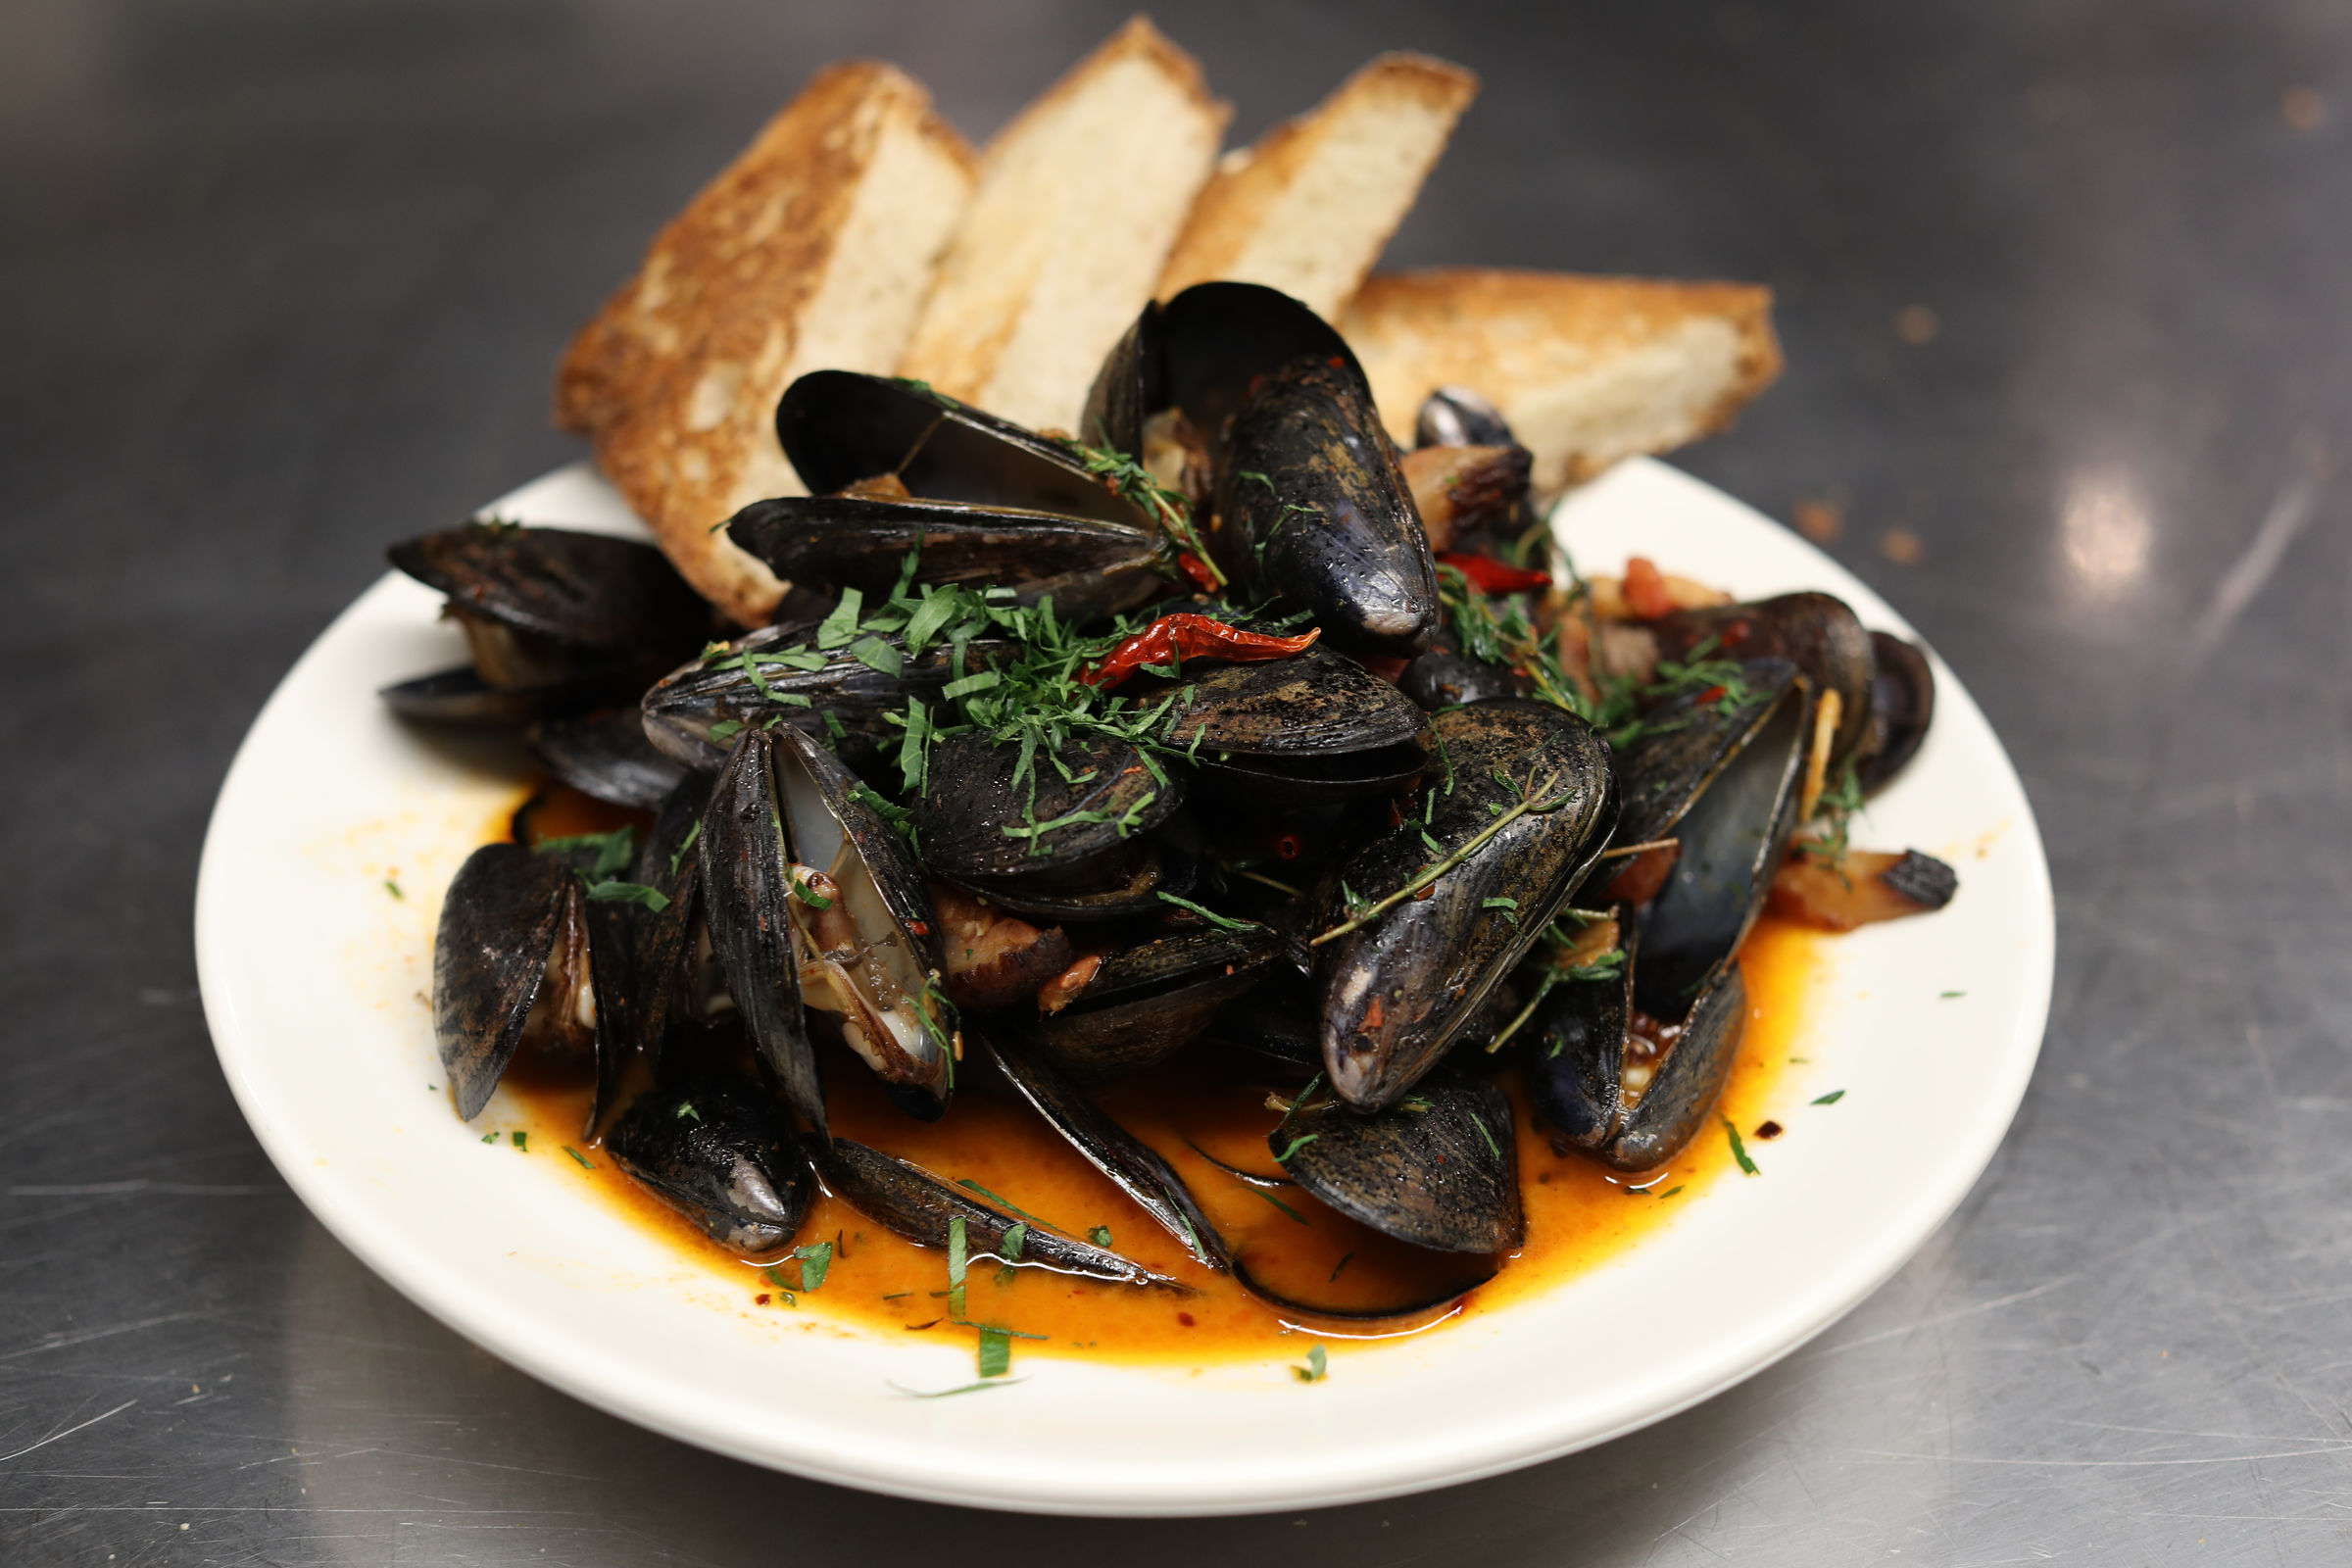 The spicy mussels at Henry's Cafe & Fine Groceries.